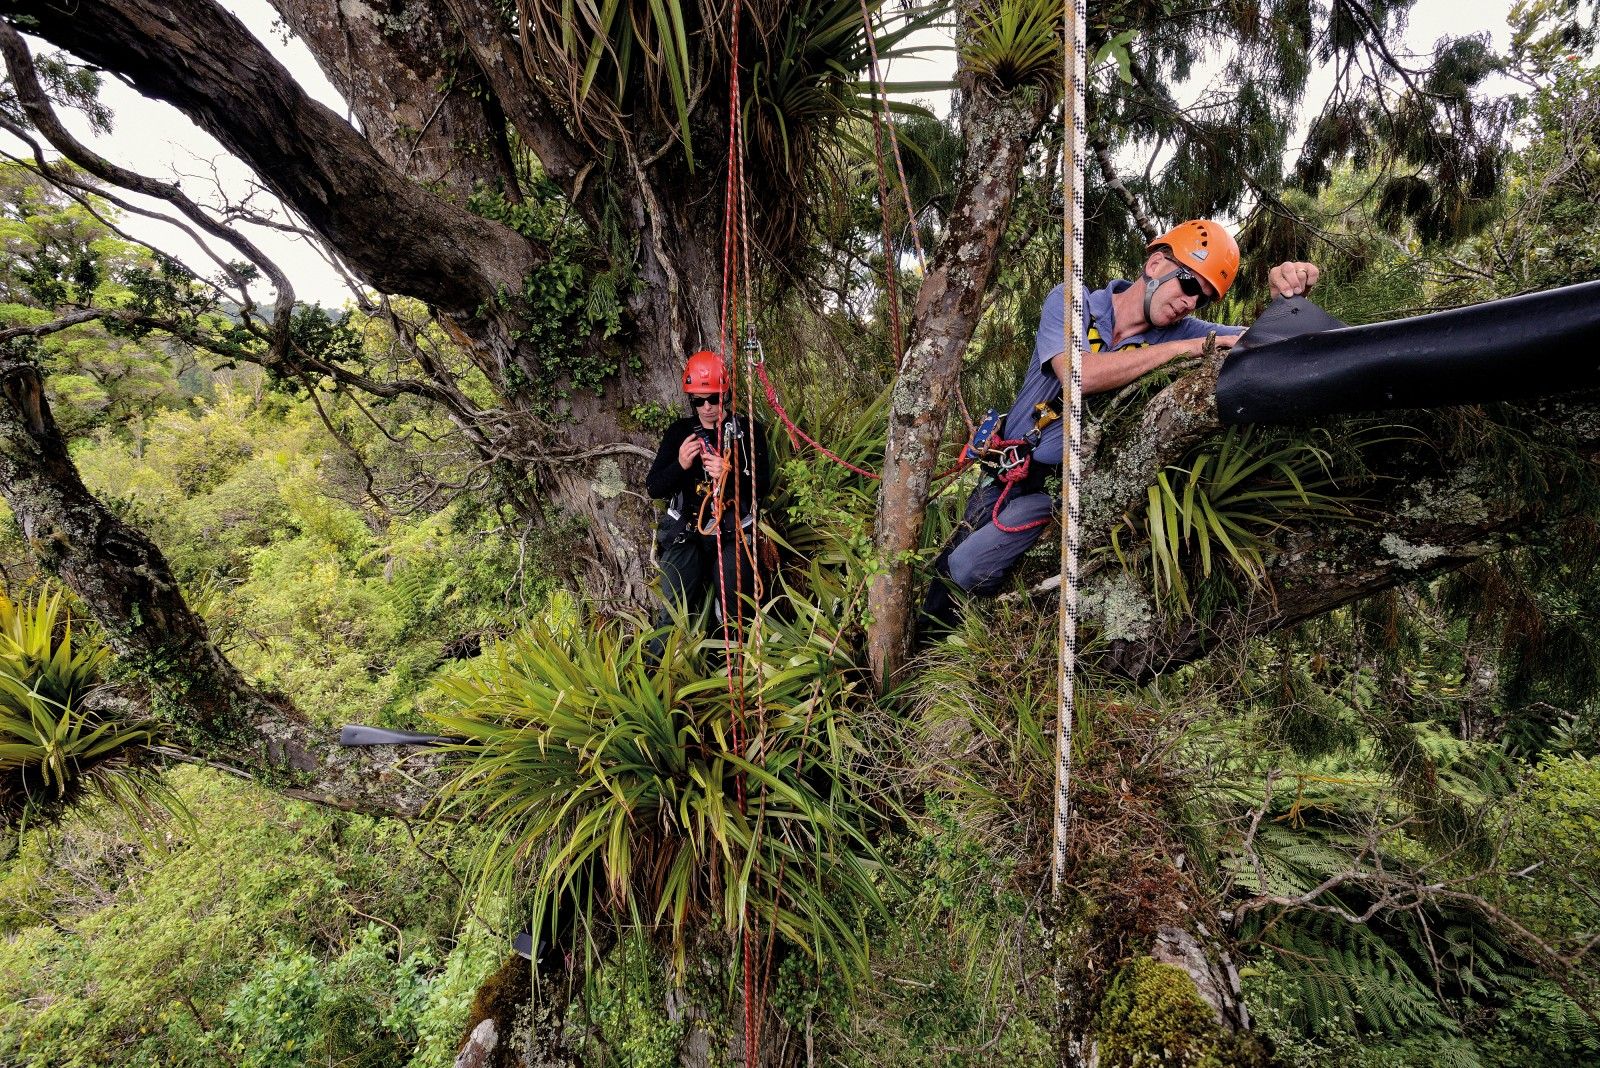 Black closed-cell foam sheets attached to branches create a damp, dark environment for invertebrates to shelter—until volunteer climbers Tanya Shennan, left, and Jeff Ninnes peel it back to check what is hiding beneath. Shennan regularly scales trees such as this rimu in Ark in the Park, a forest 'island' within Auckland's Waitakere Ranges, to monitor wildlife tracking tunnels—the black box in the lower left of the picture is one. These tunnels have captured the footprints of tree wētā, forest green geckos, centipedes, millipedes, ants, cockroaches, possums and rats.